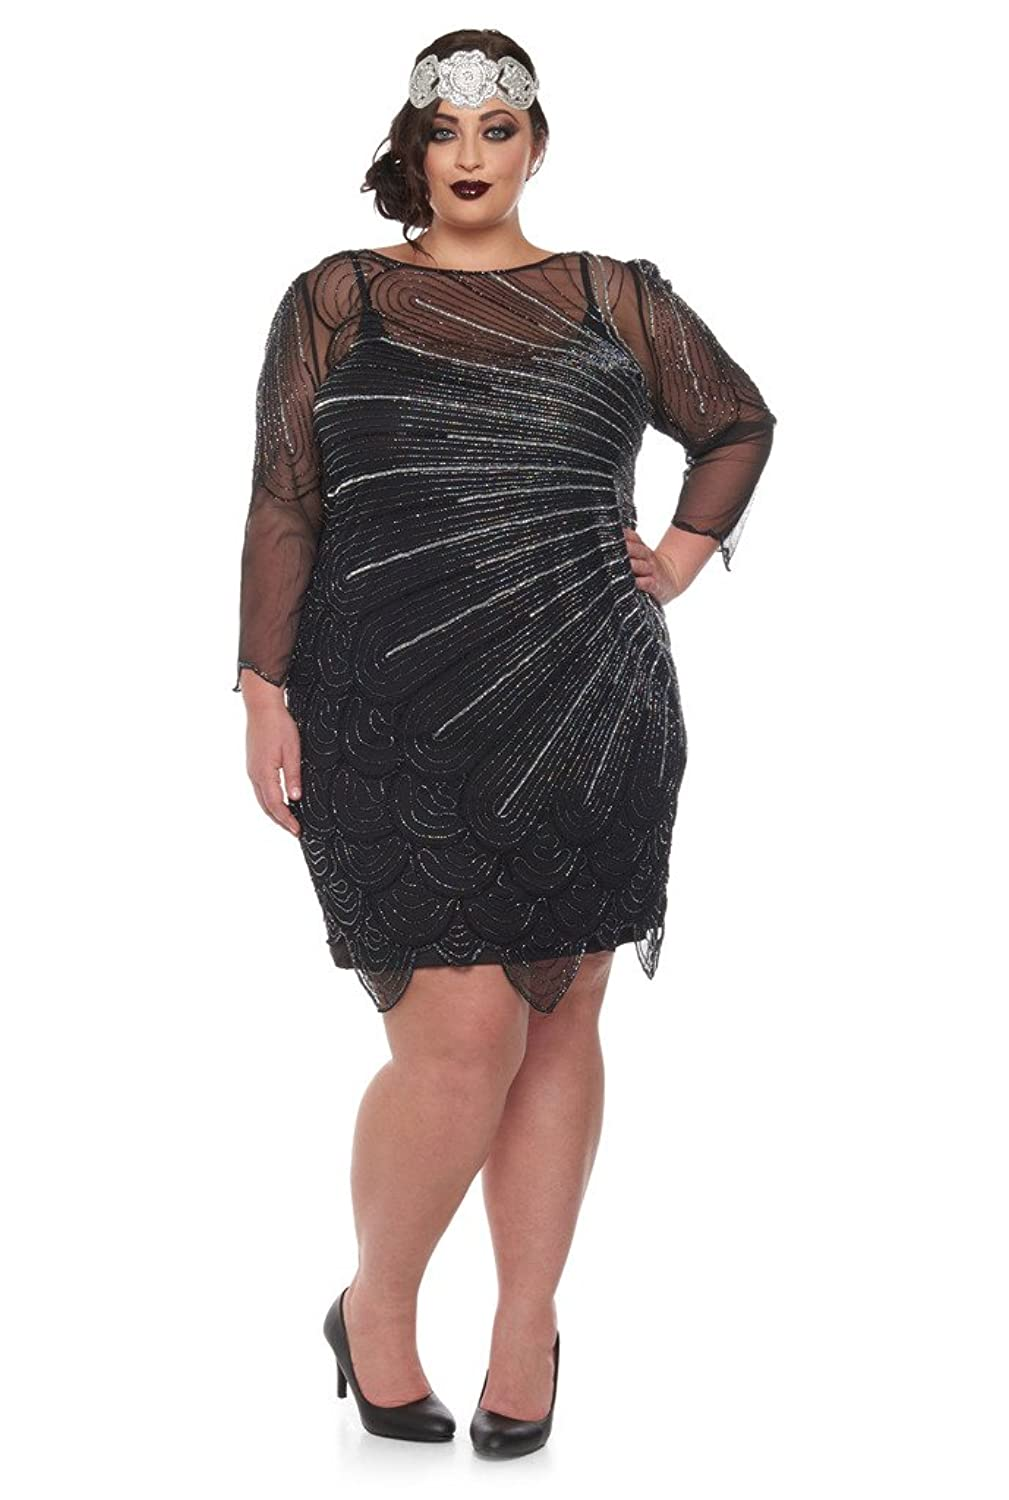 Great Gatsby Dress – Great Gatsby Dresses for Sale Catherine Vintage Inspired Flapper Dress in Black Silver $105.22 AT vintagedancer.com